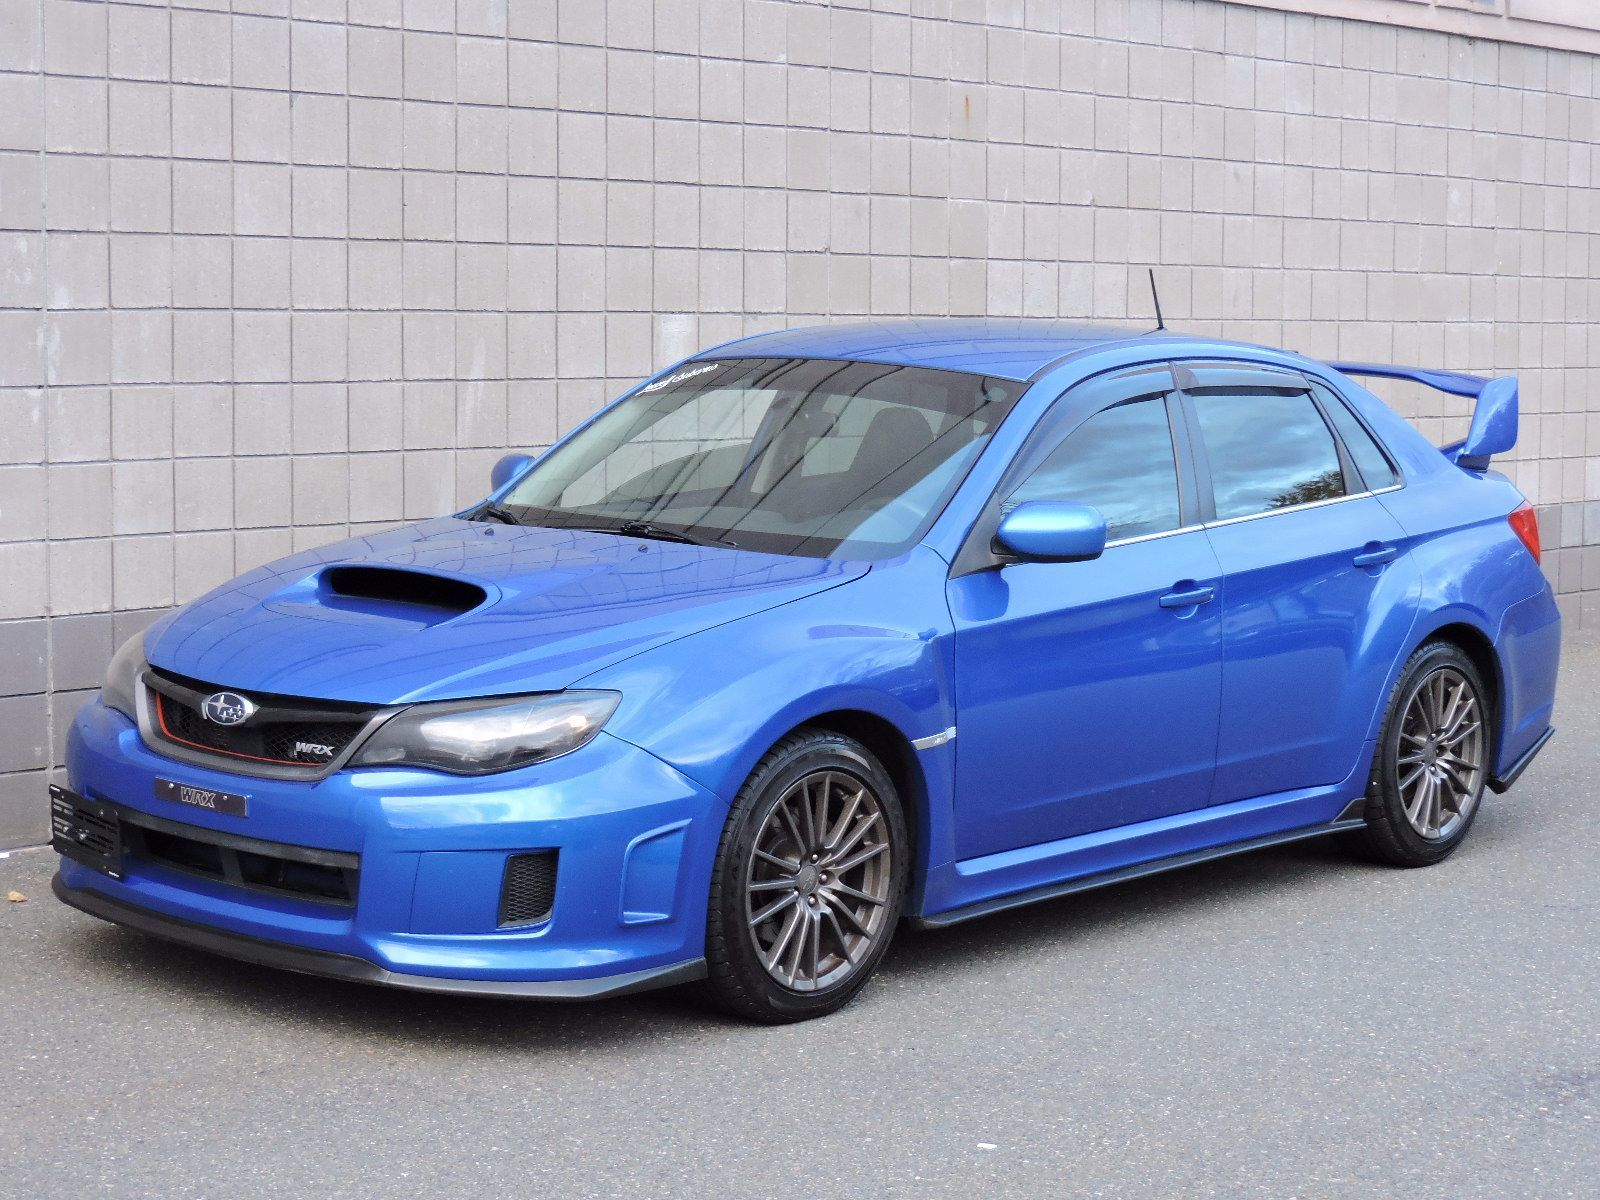 used 2011 subaru impreza sedan wrx wrx at auto house usa saugus. Black Bedroom Furniture Sets. Home Design Ideas